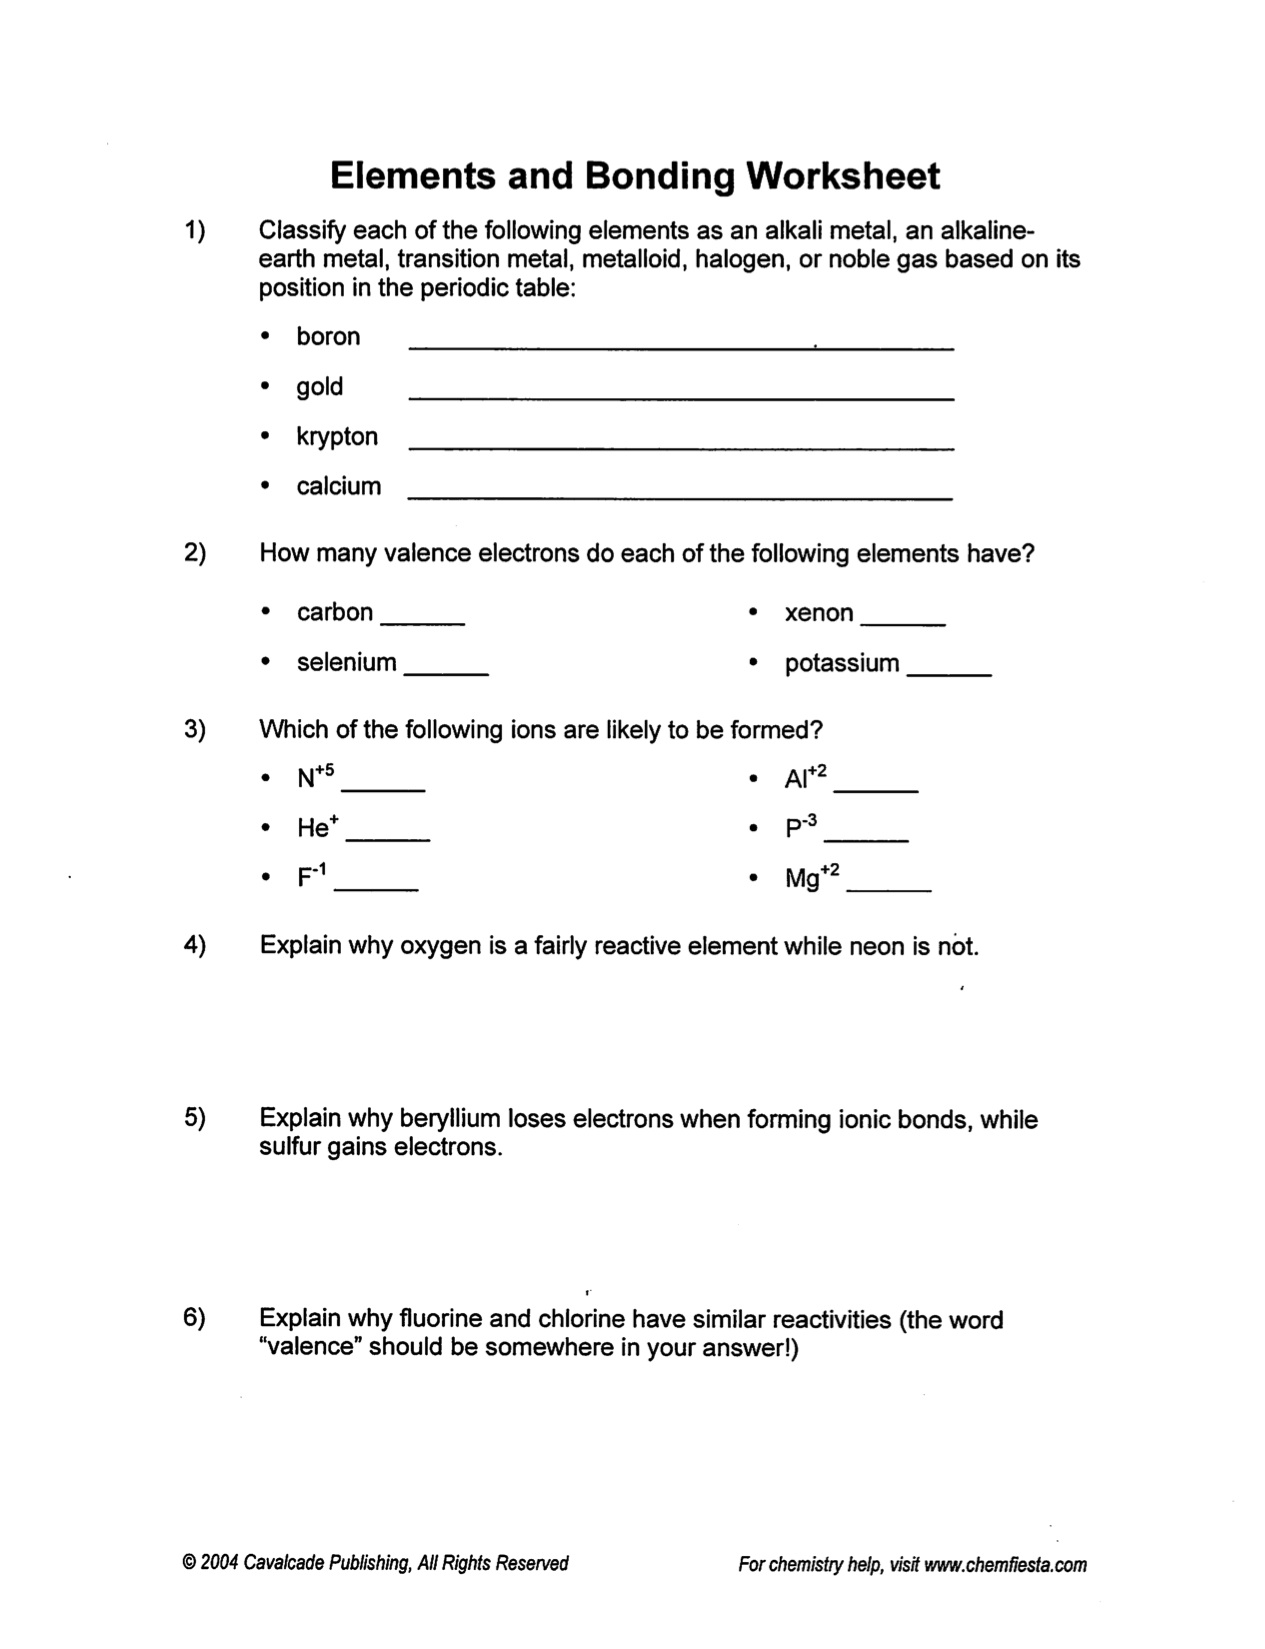 Free Worksheet Electron Dot Diagram Worksheet warren county public schools elements and bonding